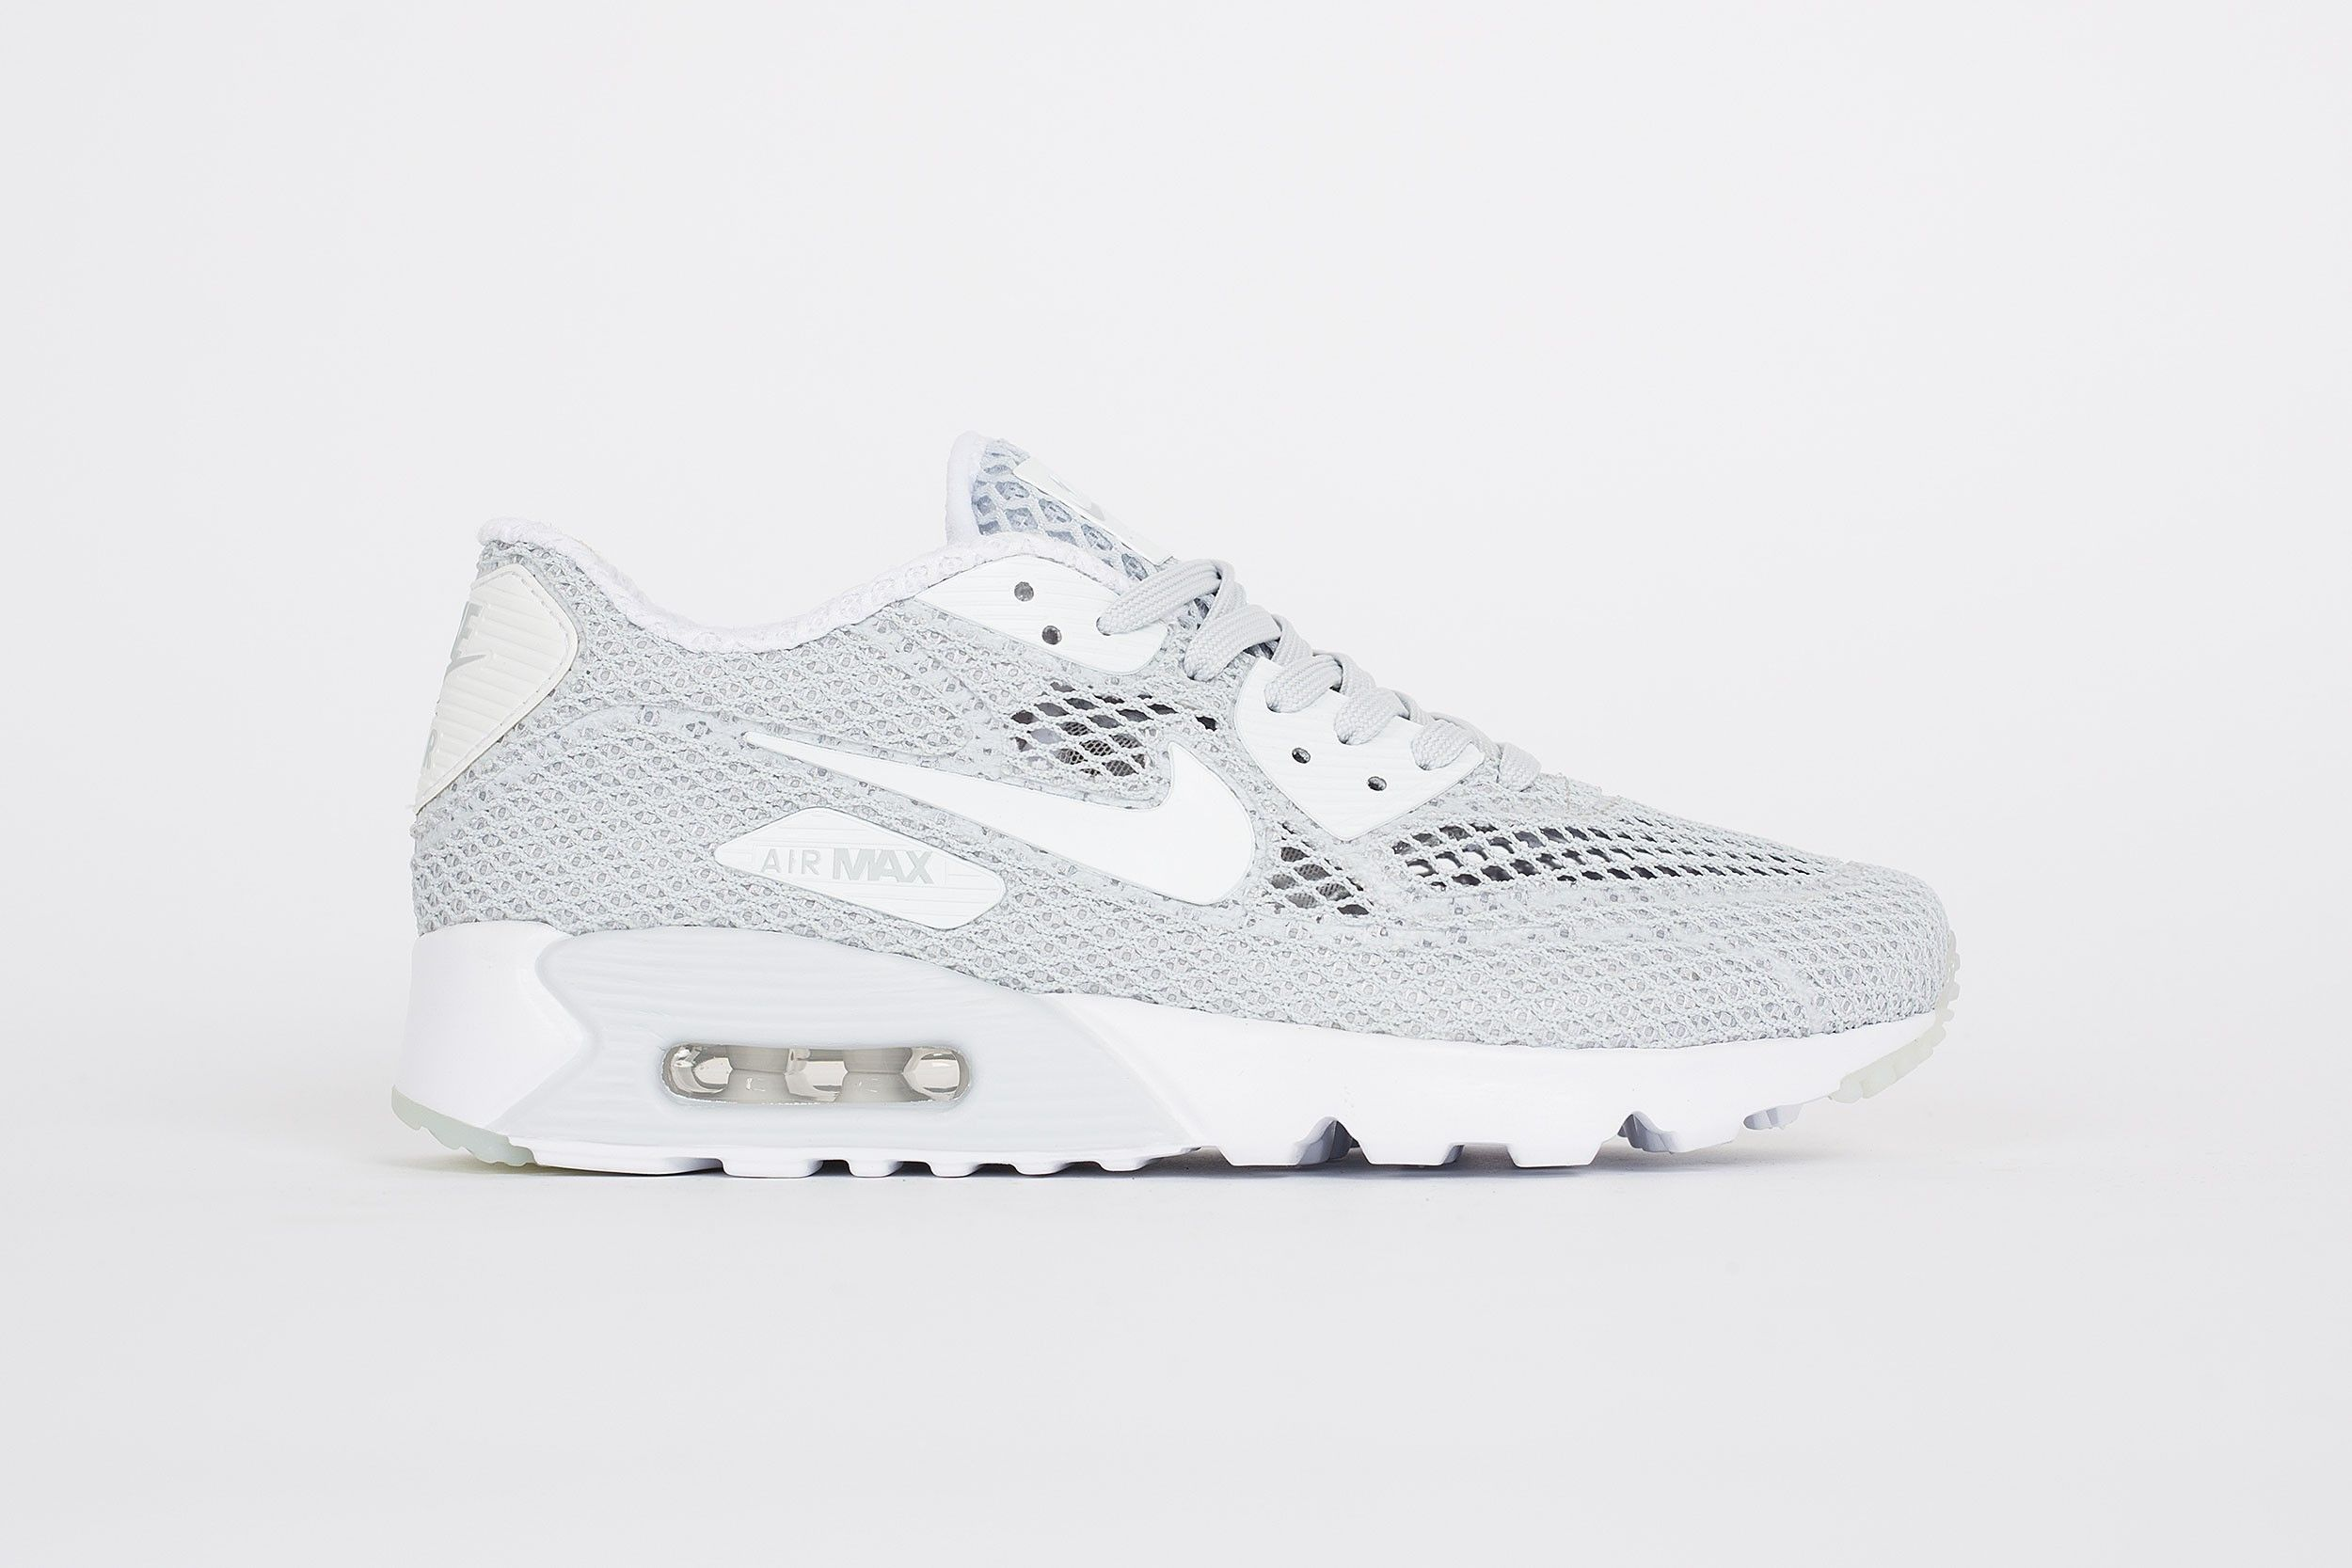 chaussures de séparation fecf0 fa956 150 Euro - Air Max 90 Ultra BR Plus QS (grey/ white) | Coole ...